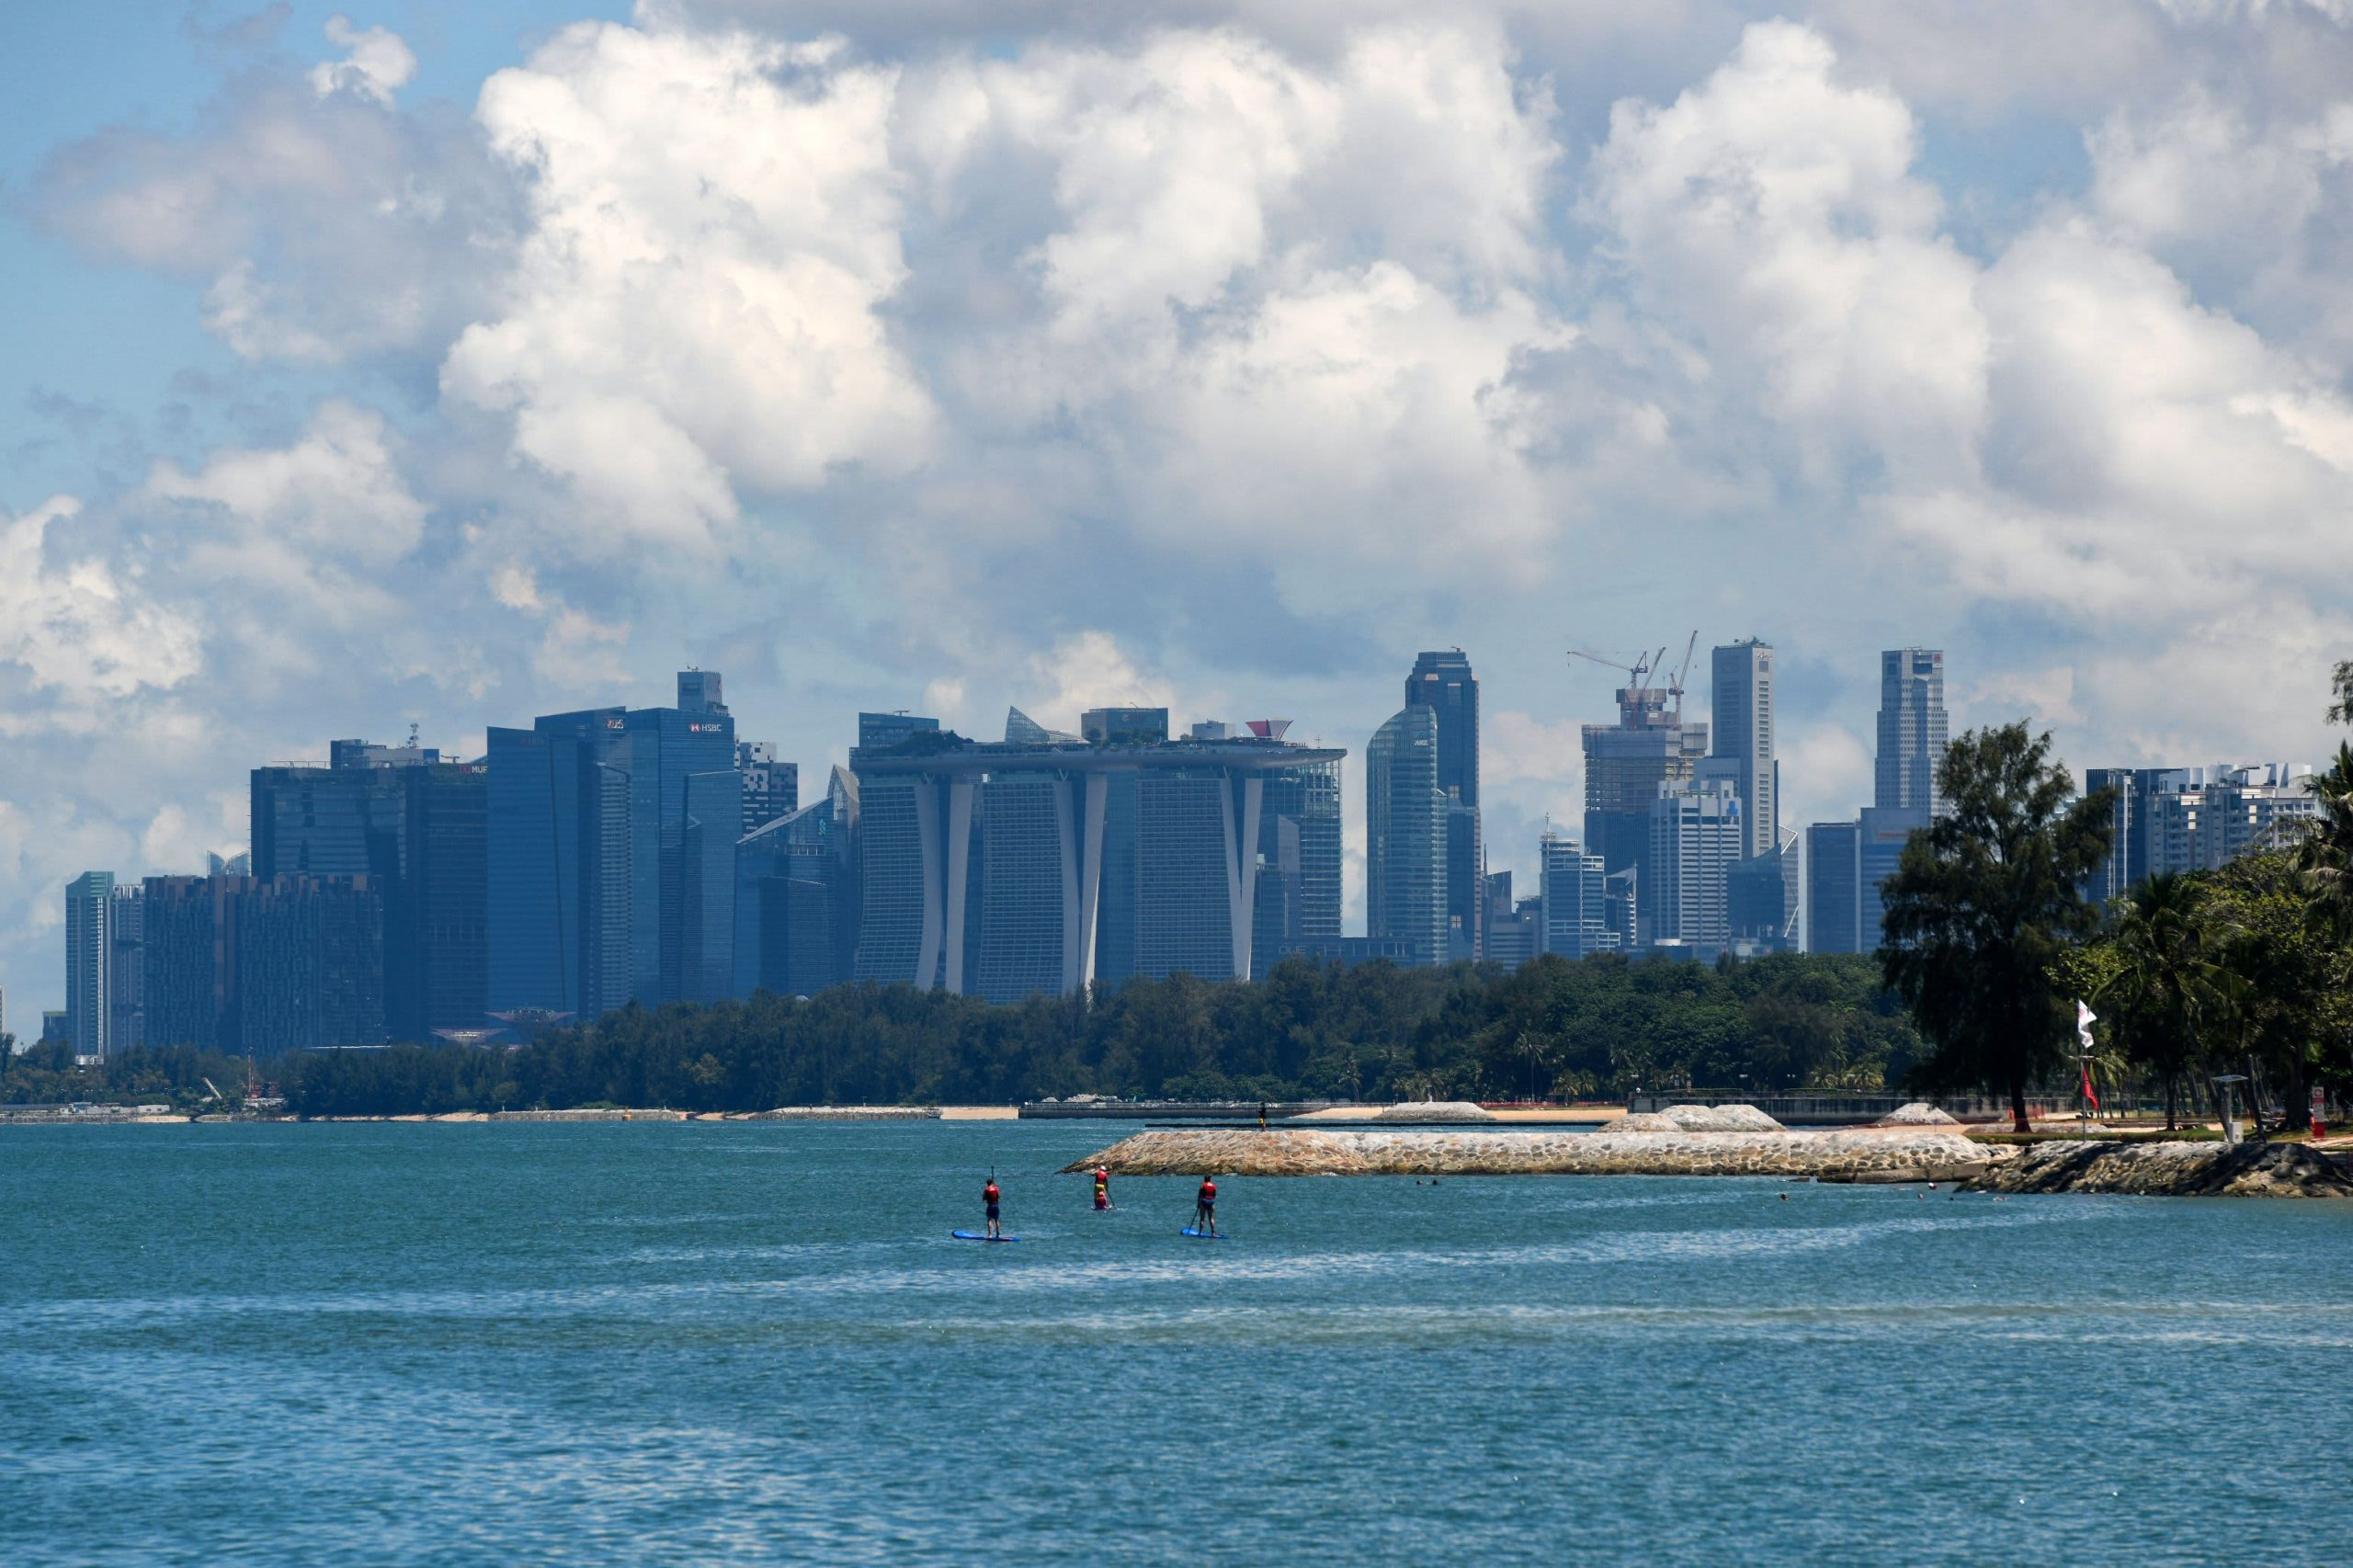 Singapore faces 'twin challenges' from climate change, says minister